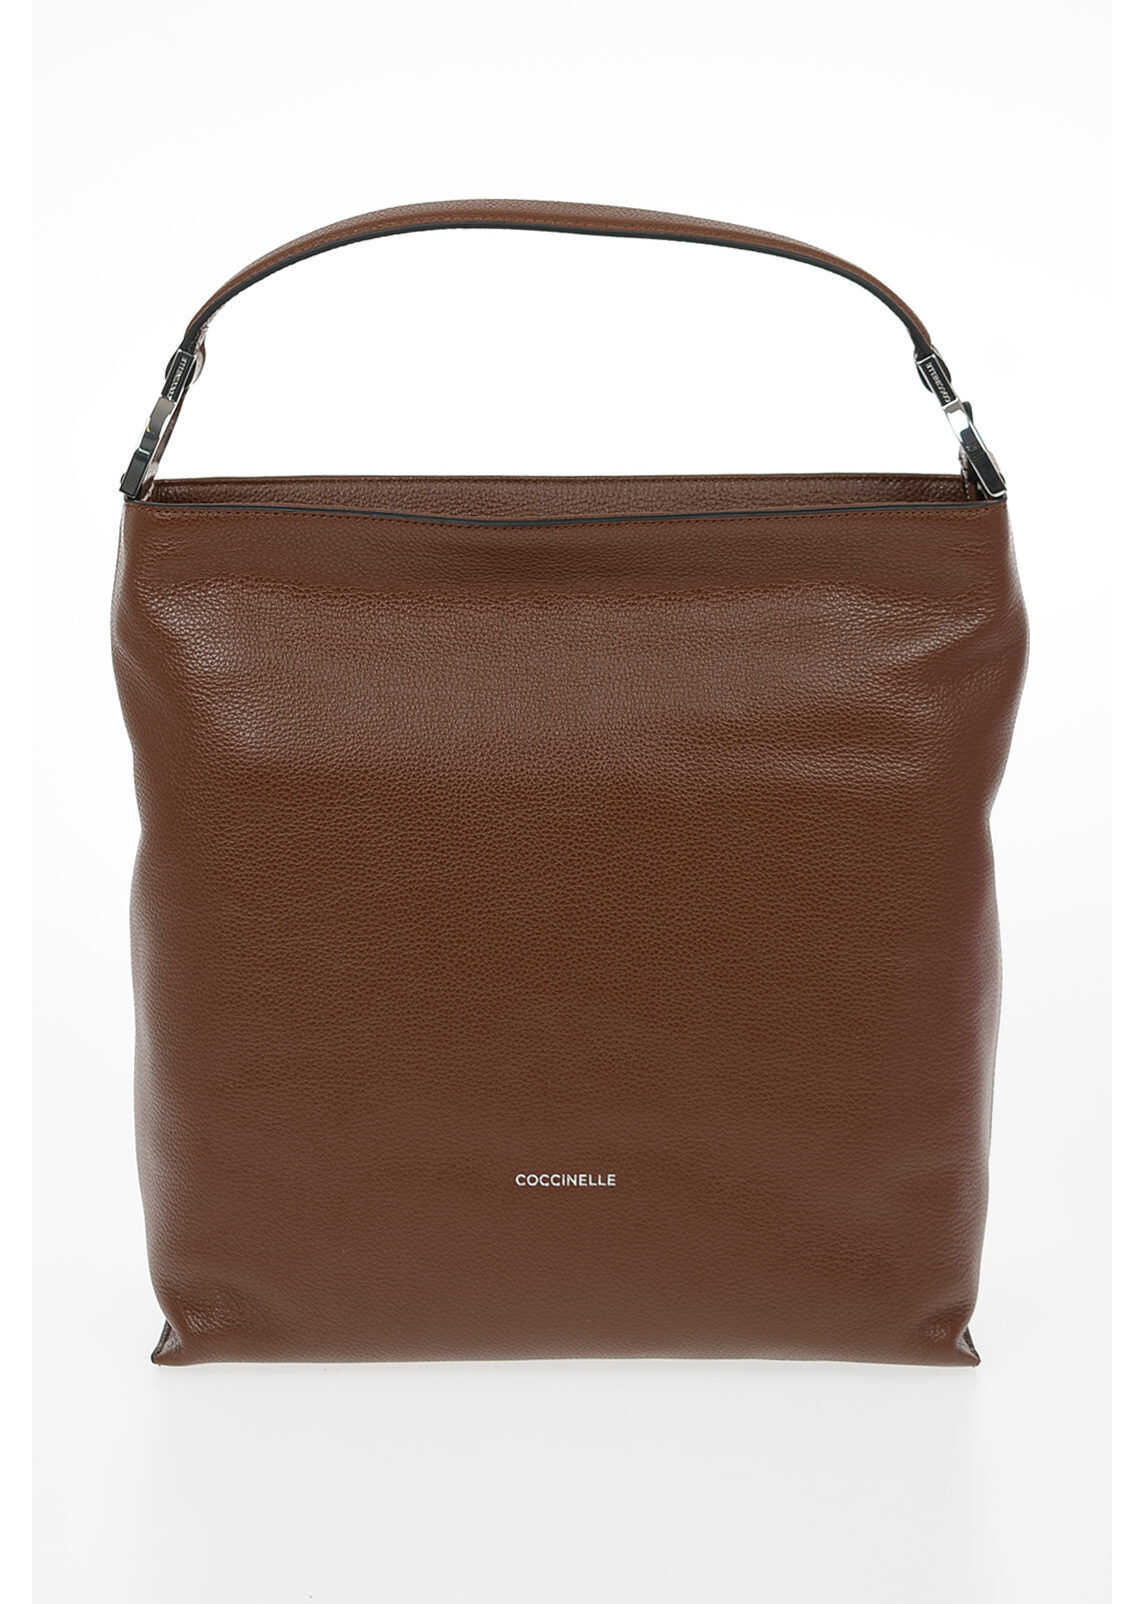 Coccinelle Leather KEYLA Bag BROWN imagine b-mall.ro